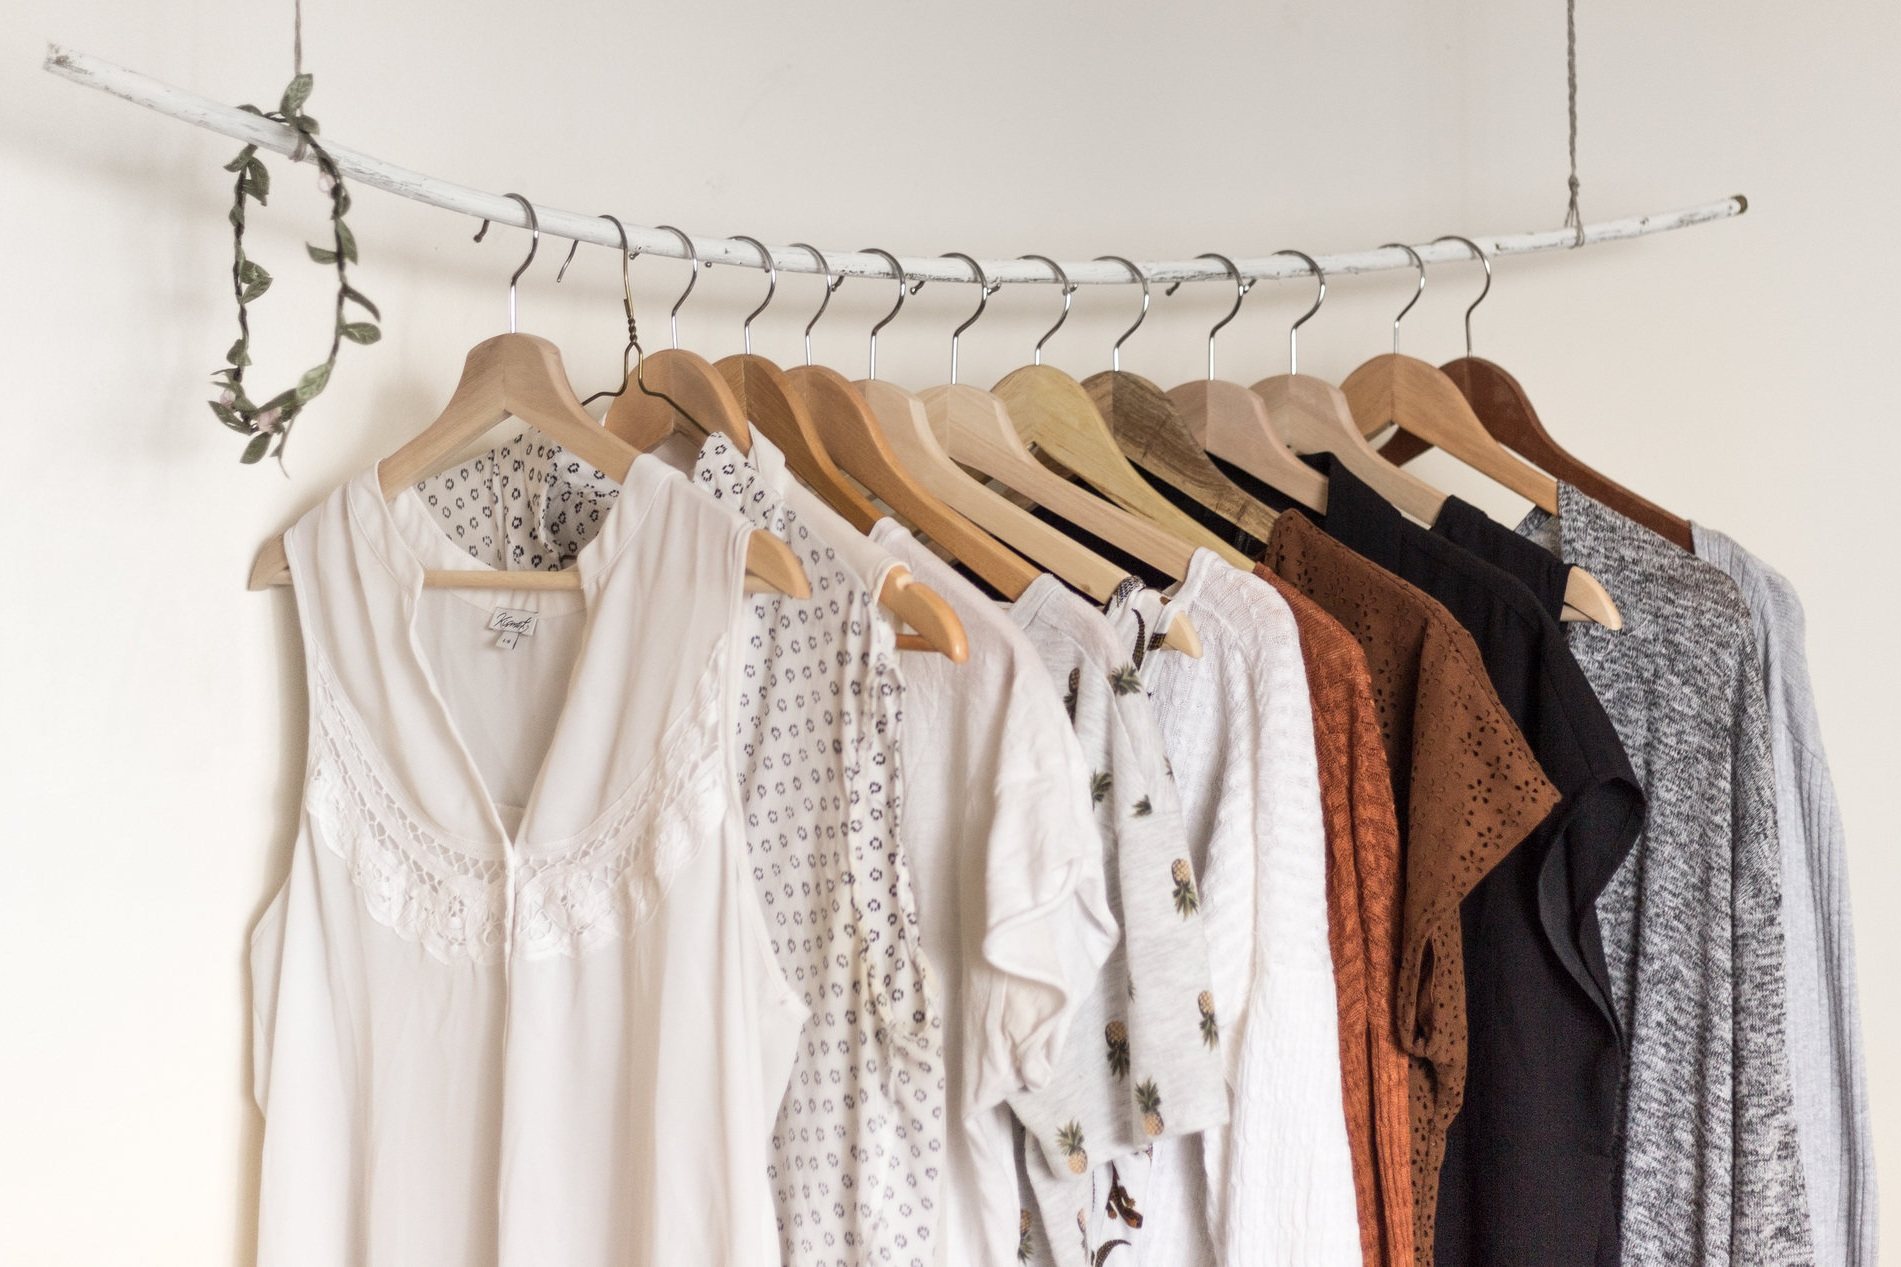 Wardrobe Consulting & Closet Clearing - Rebranding and Personal Shopping/Styling